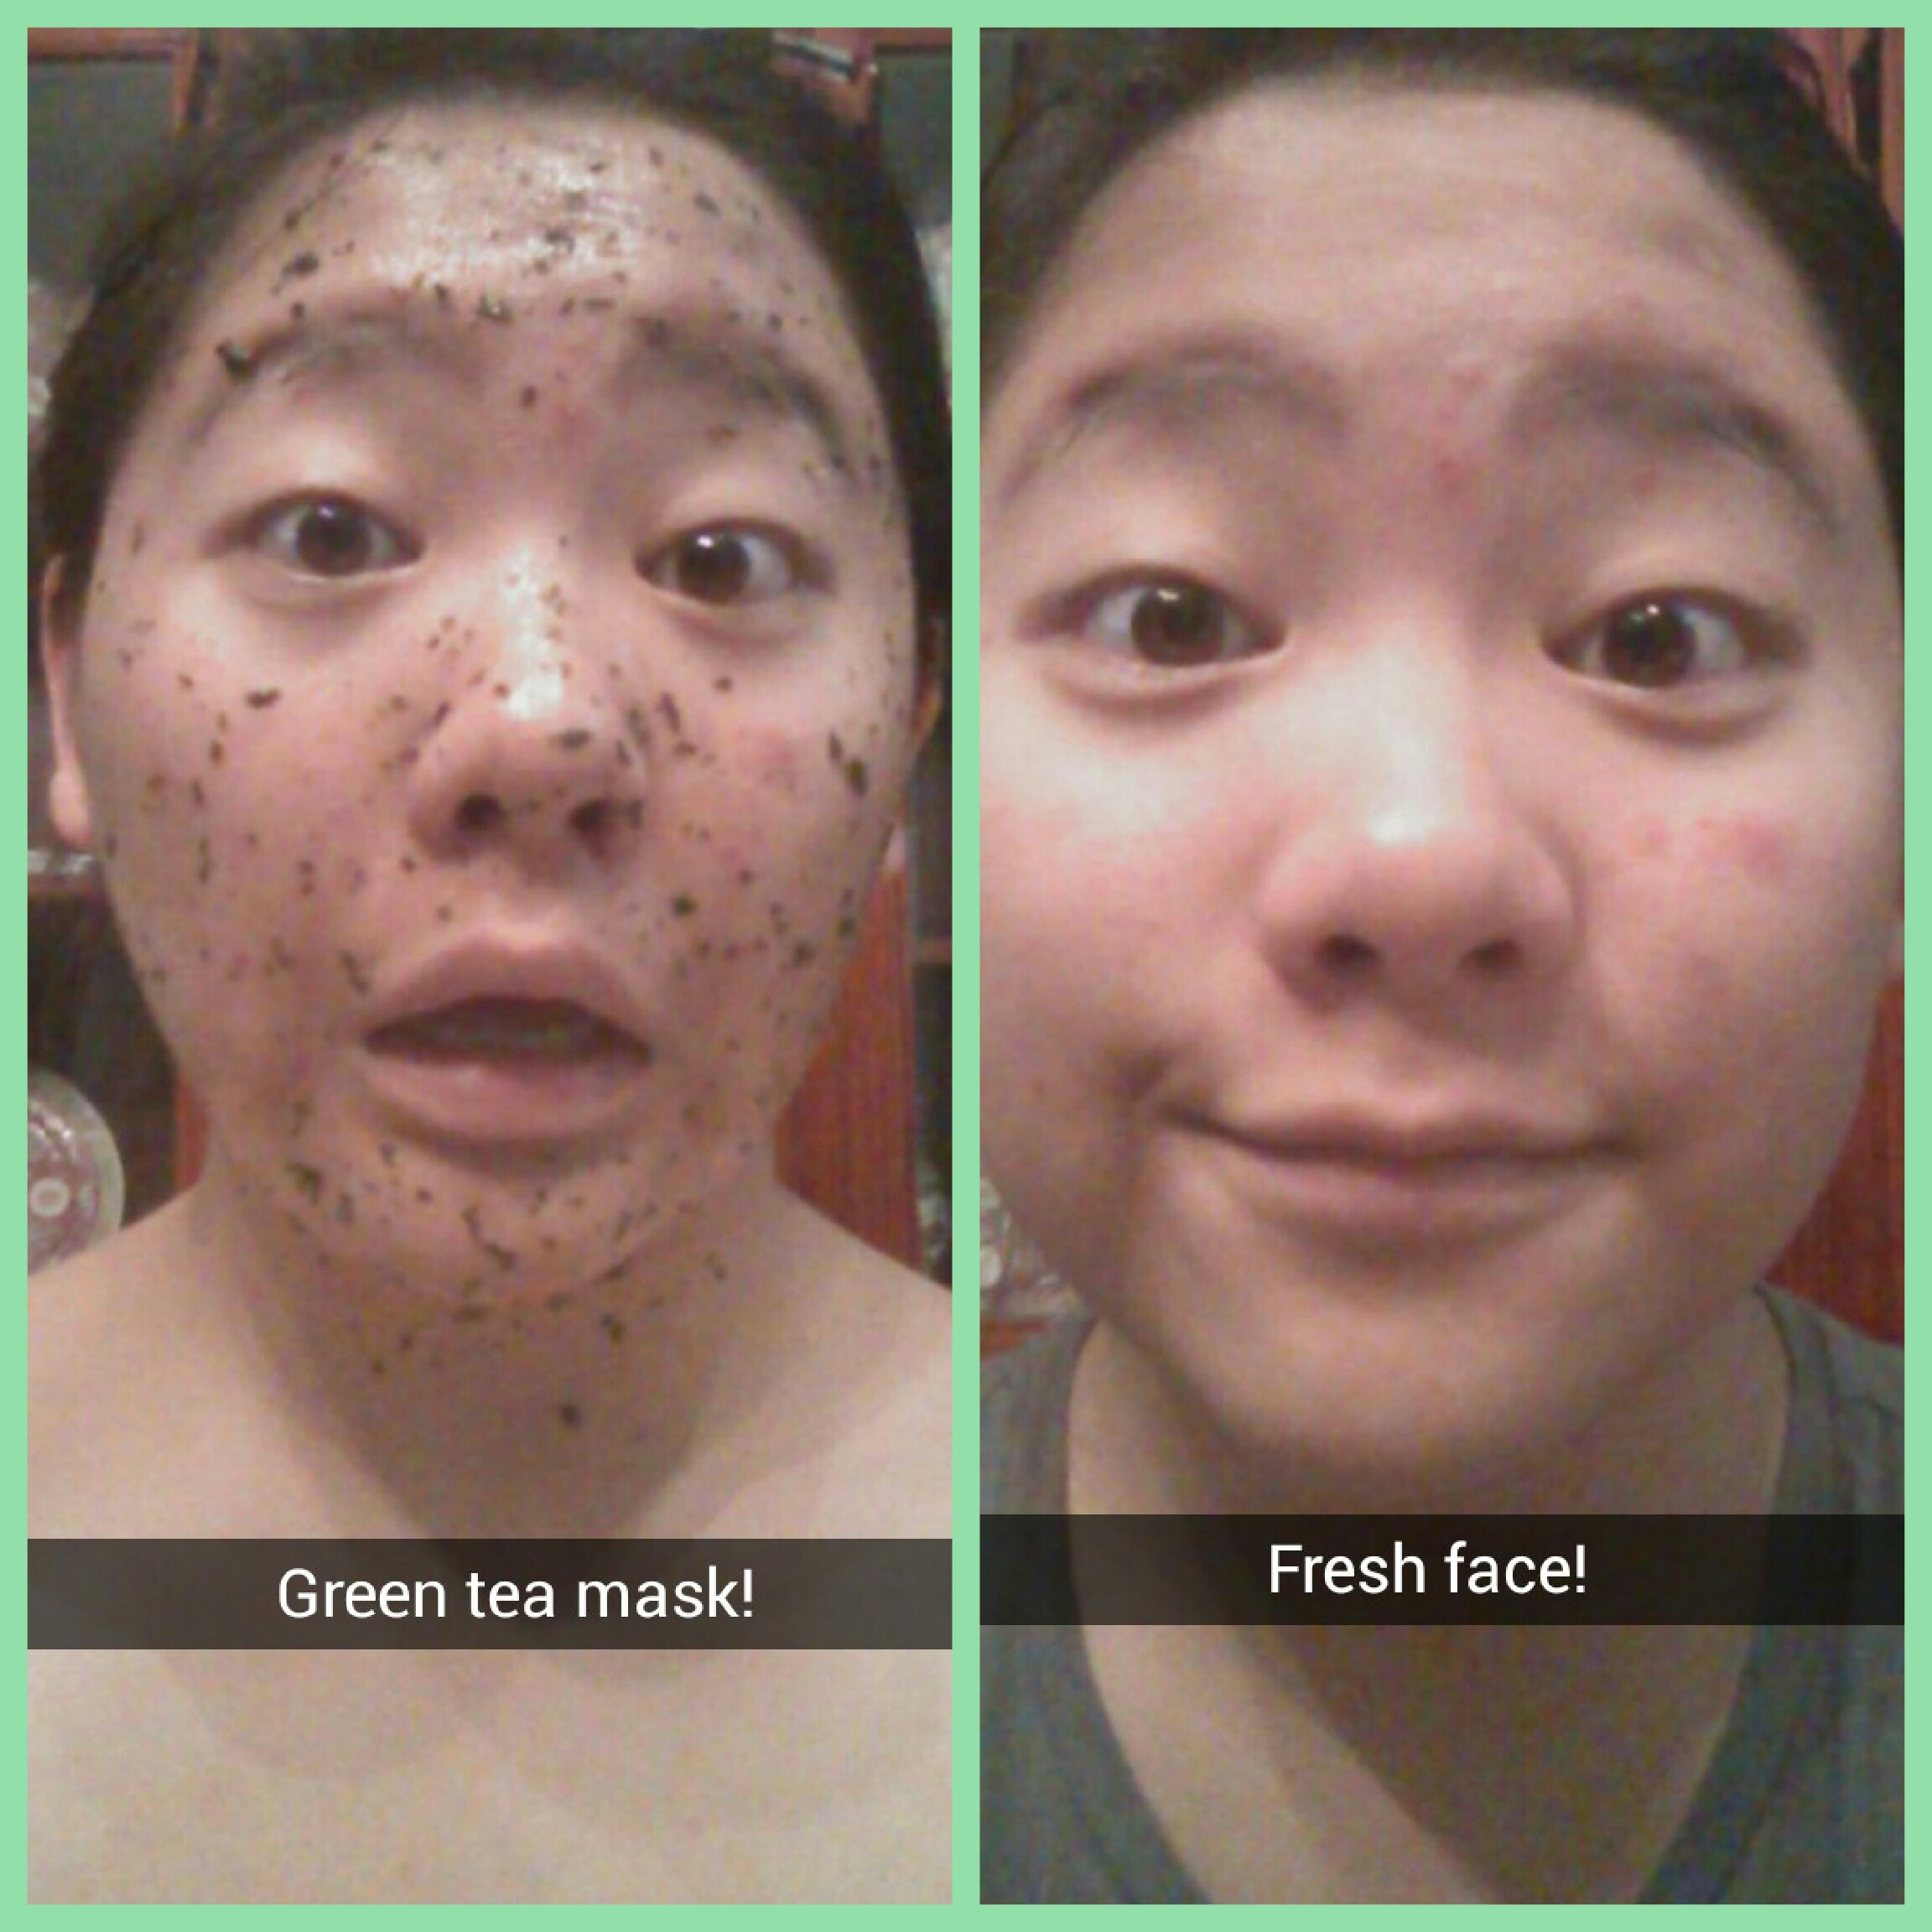 Bag Face Tea Green Acne On